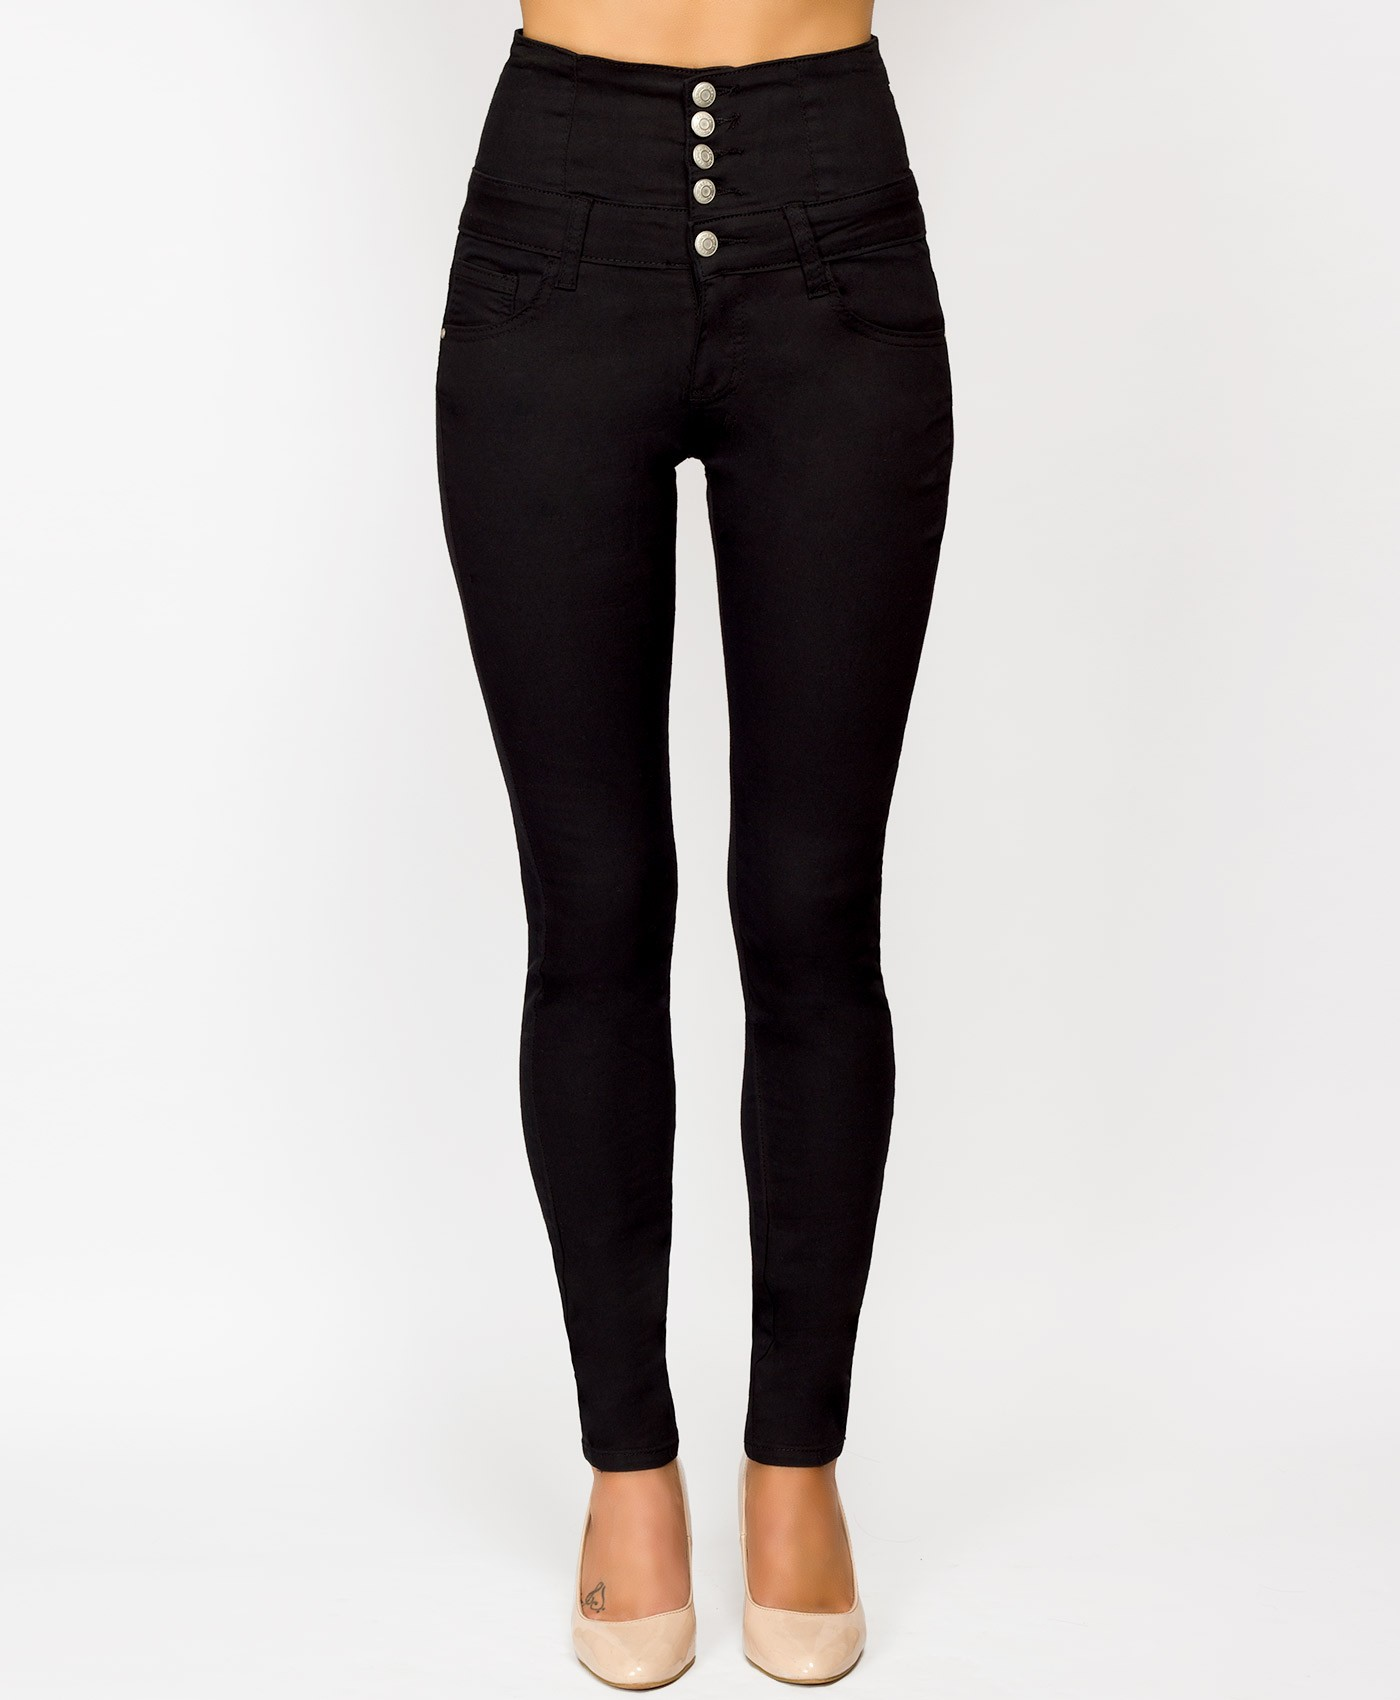 Black Button Up High Waisted Stretch Jeans